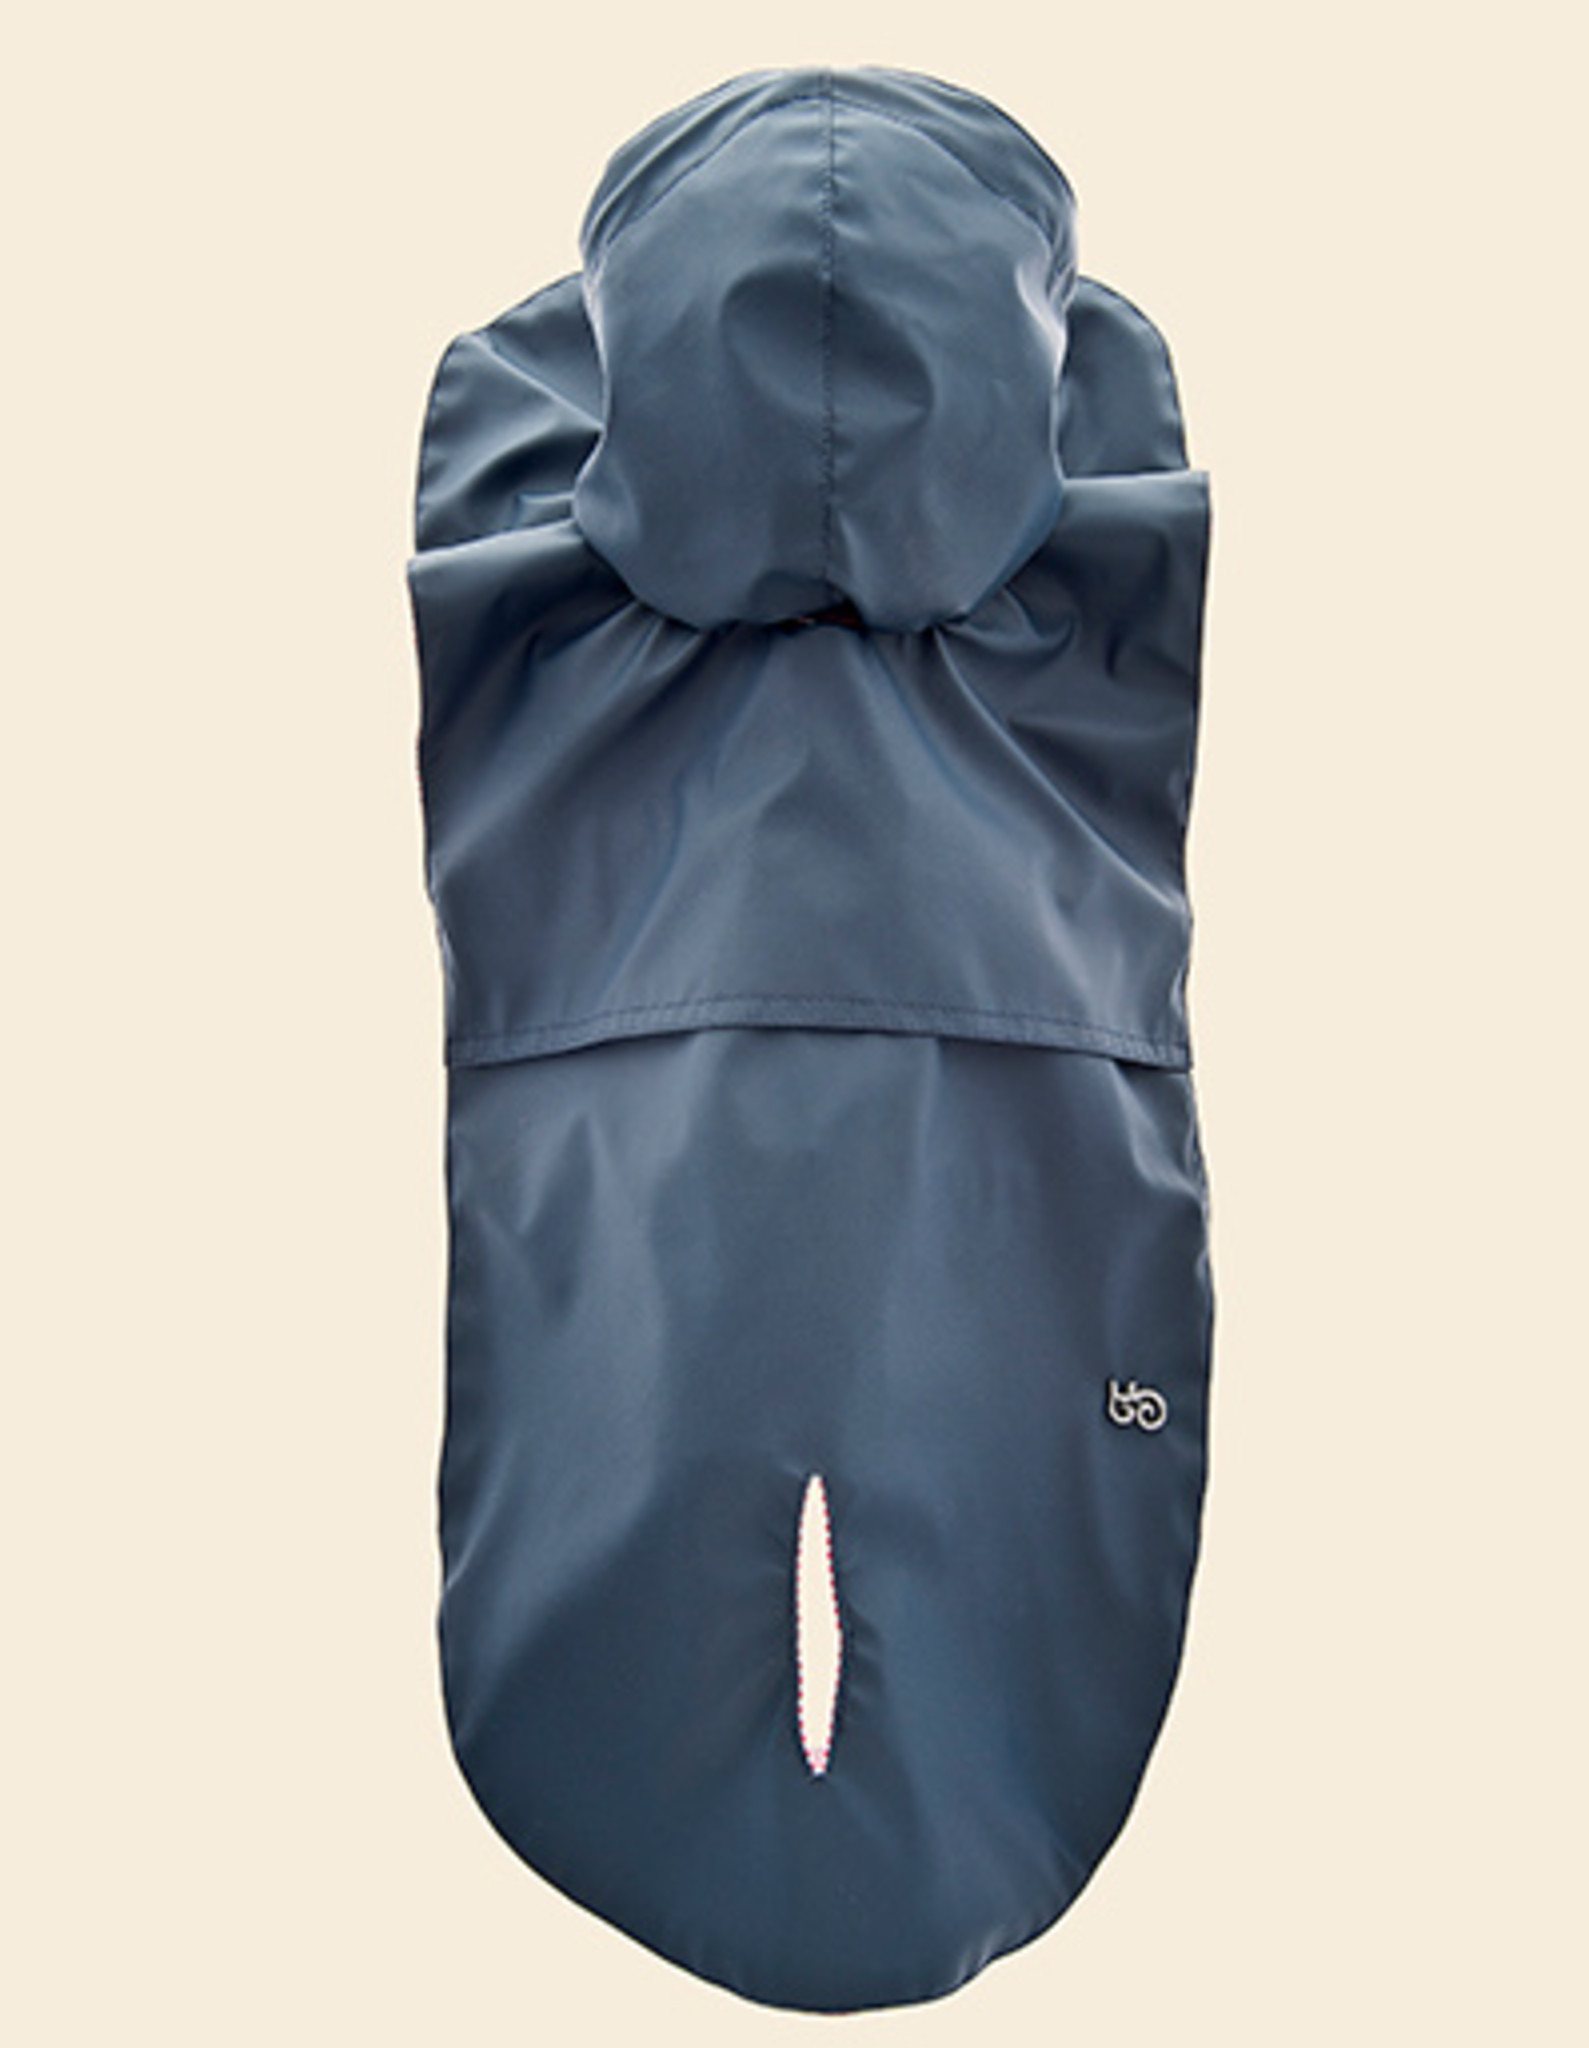 Blue Raincoat for Dogs with hood | Ferribiella